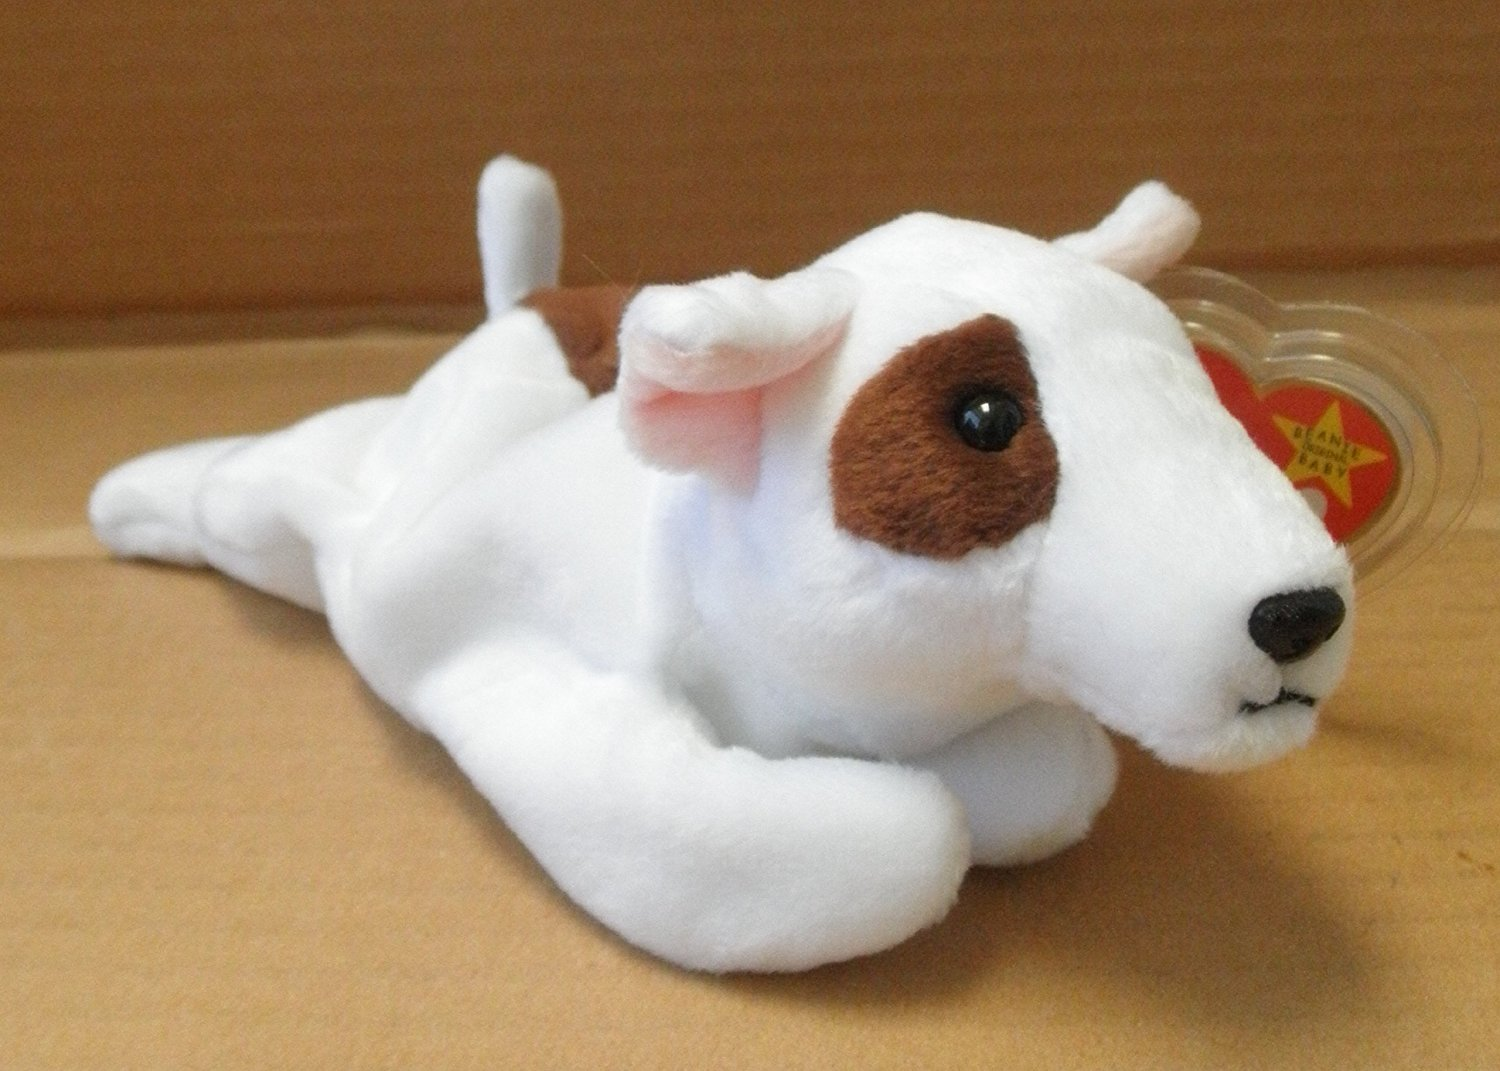 8fa438b8d49 TY Beanie Babies Butch the Bull Terrier Dog Stuffed Animal Plush Toy - 8  inches long